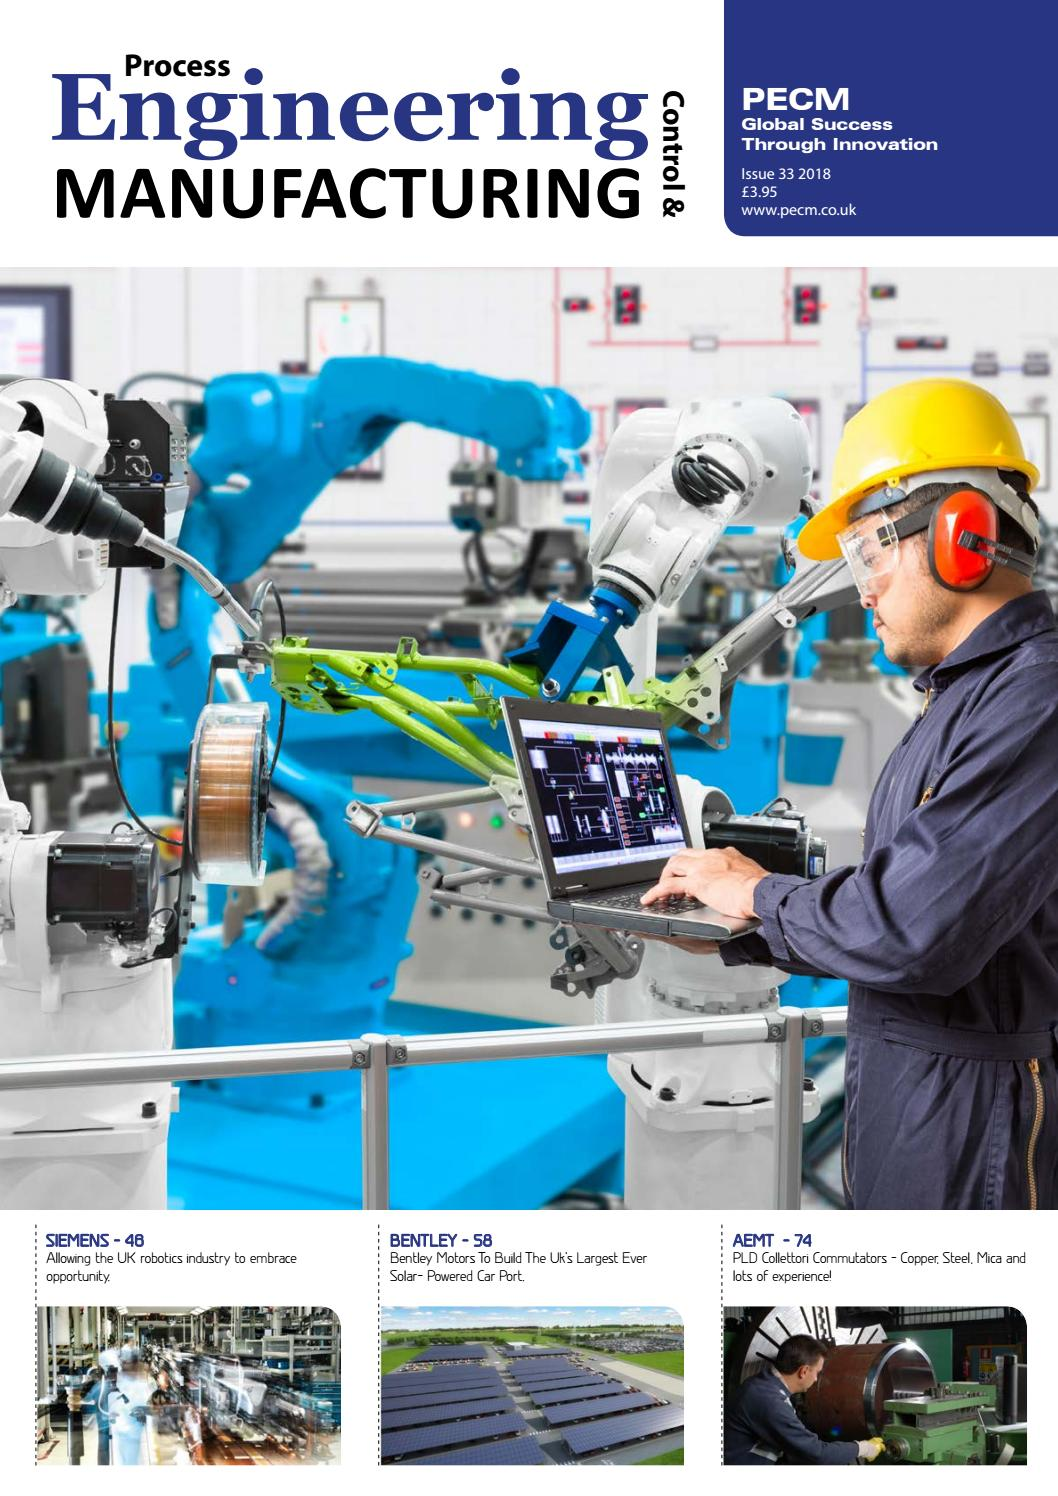 Process Engineering Control & Manufacturing Issue 33 2018 by MH